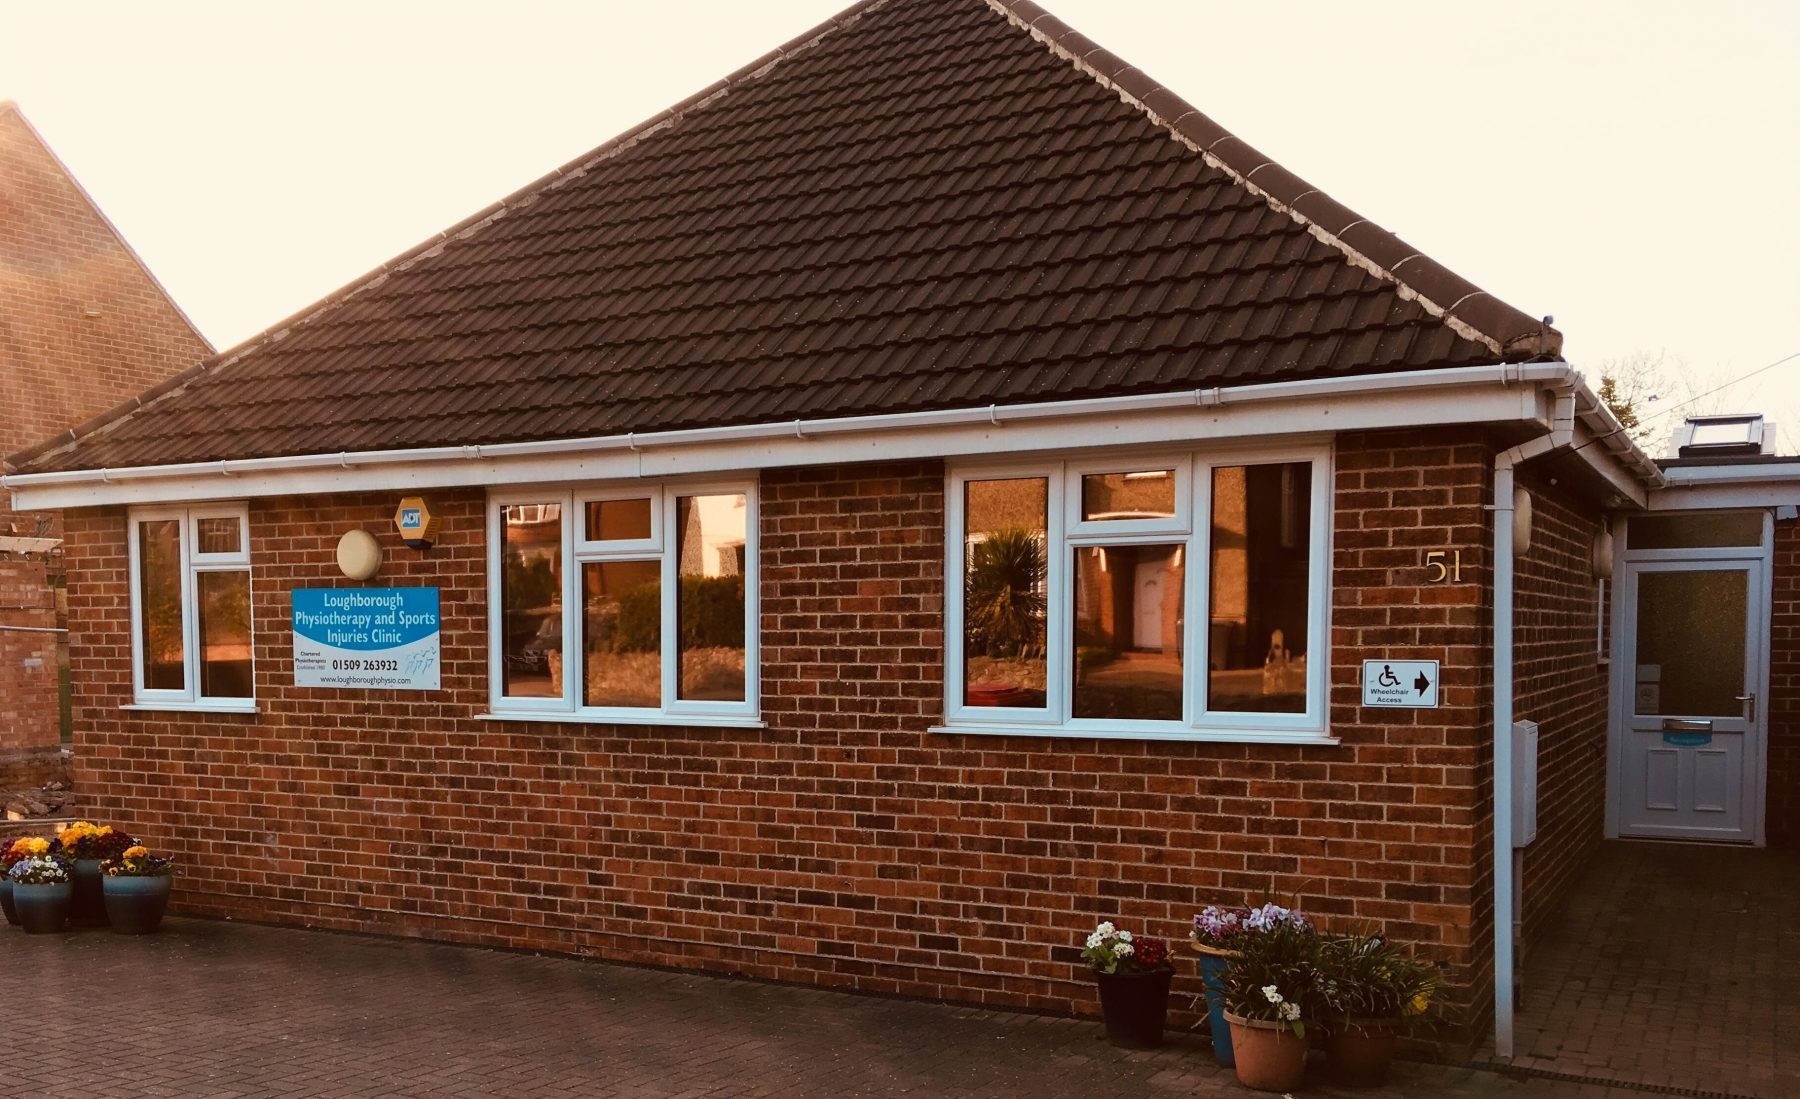 Loughborough Physiotherapy and Sports Injuries Clinic accessible